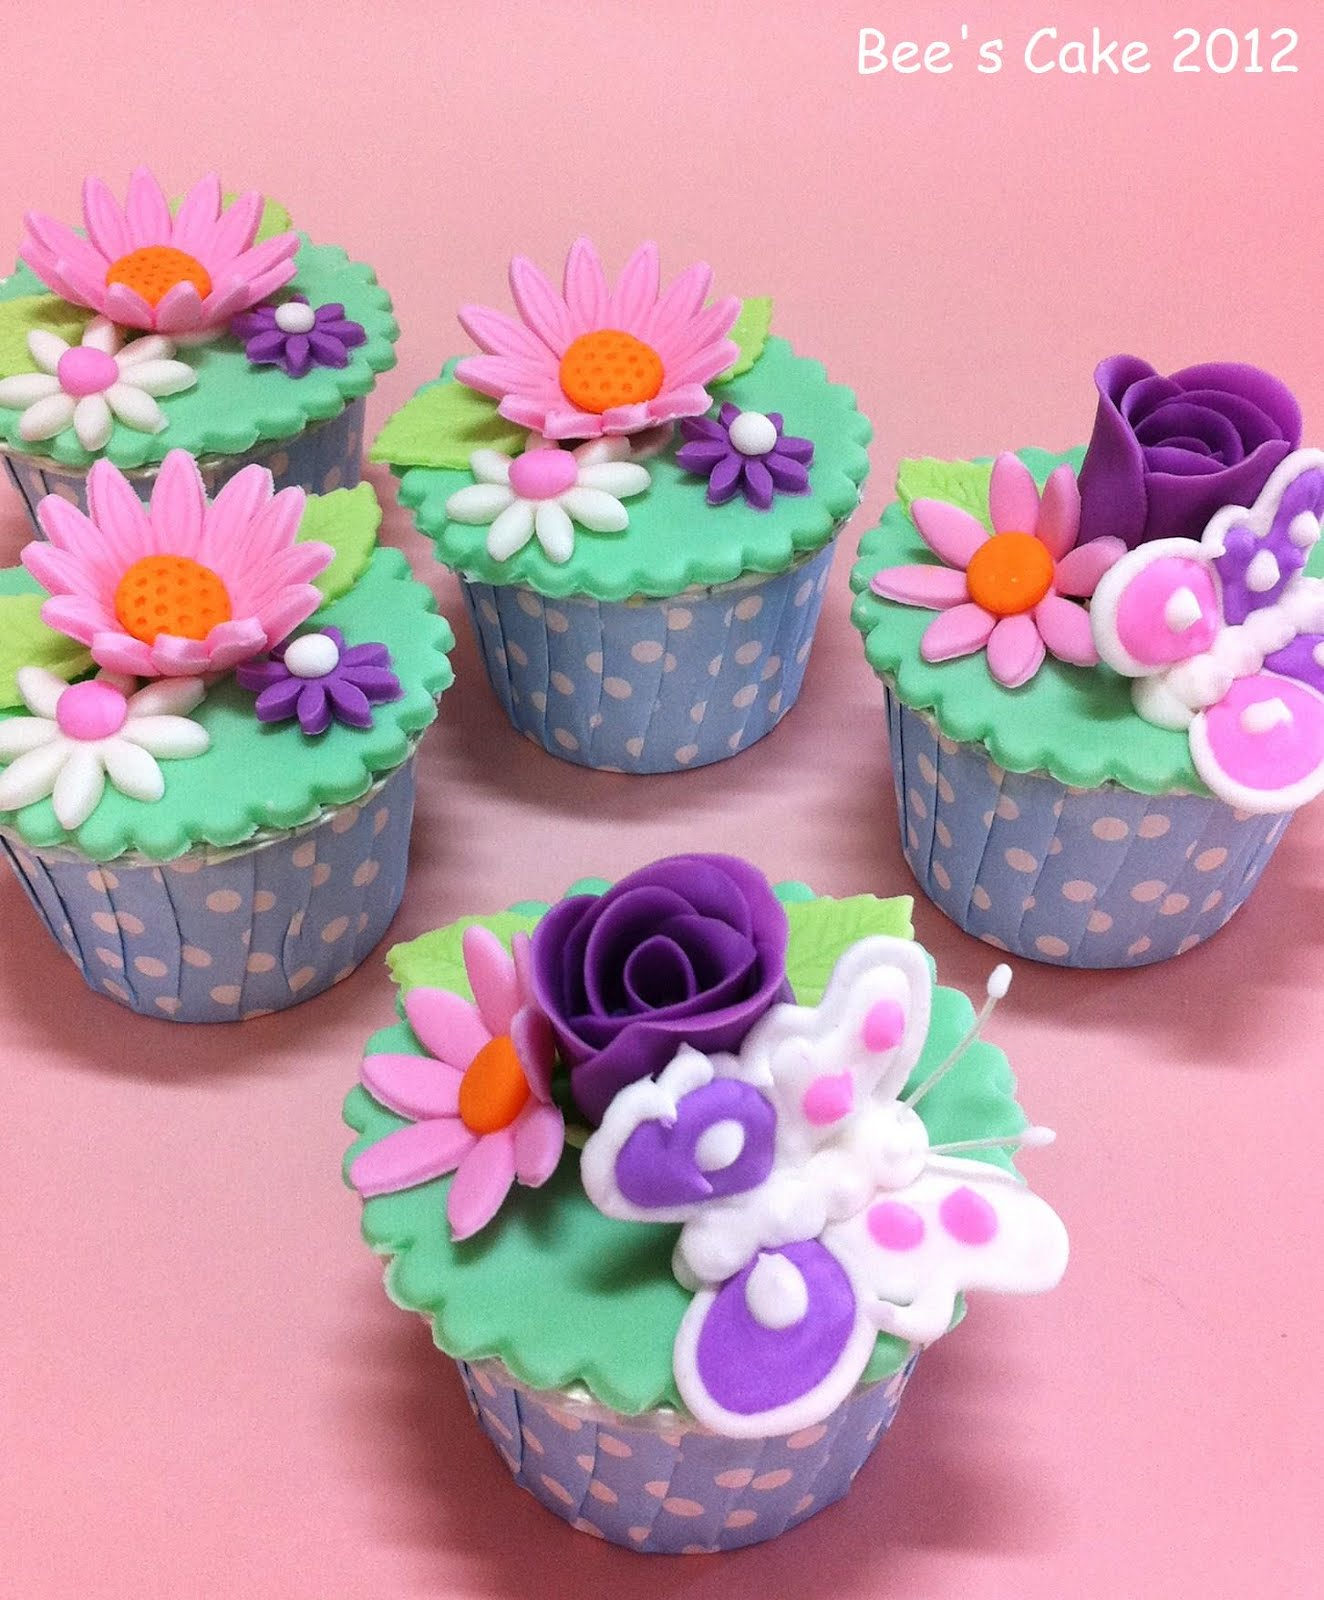 Bees Cake: Flower Cupcakes